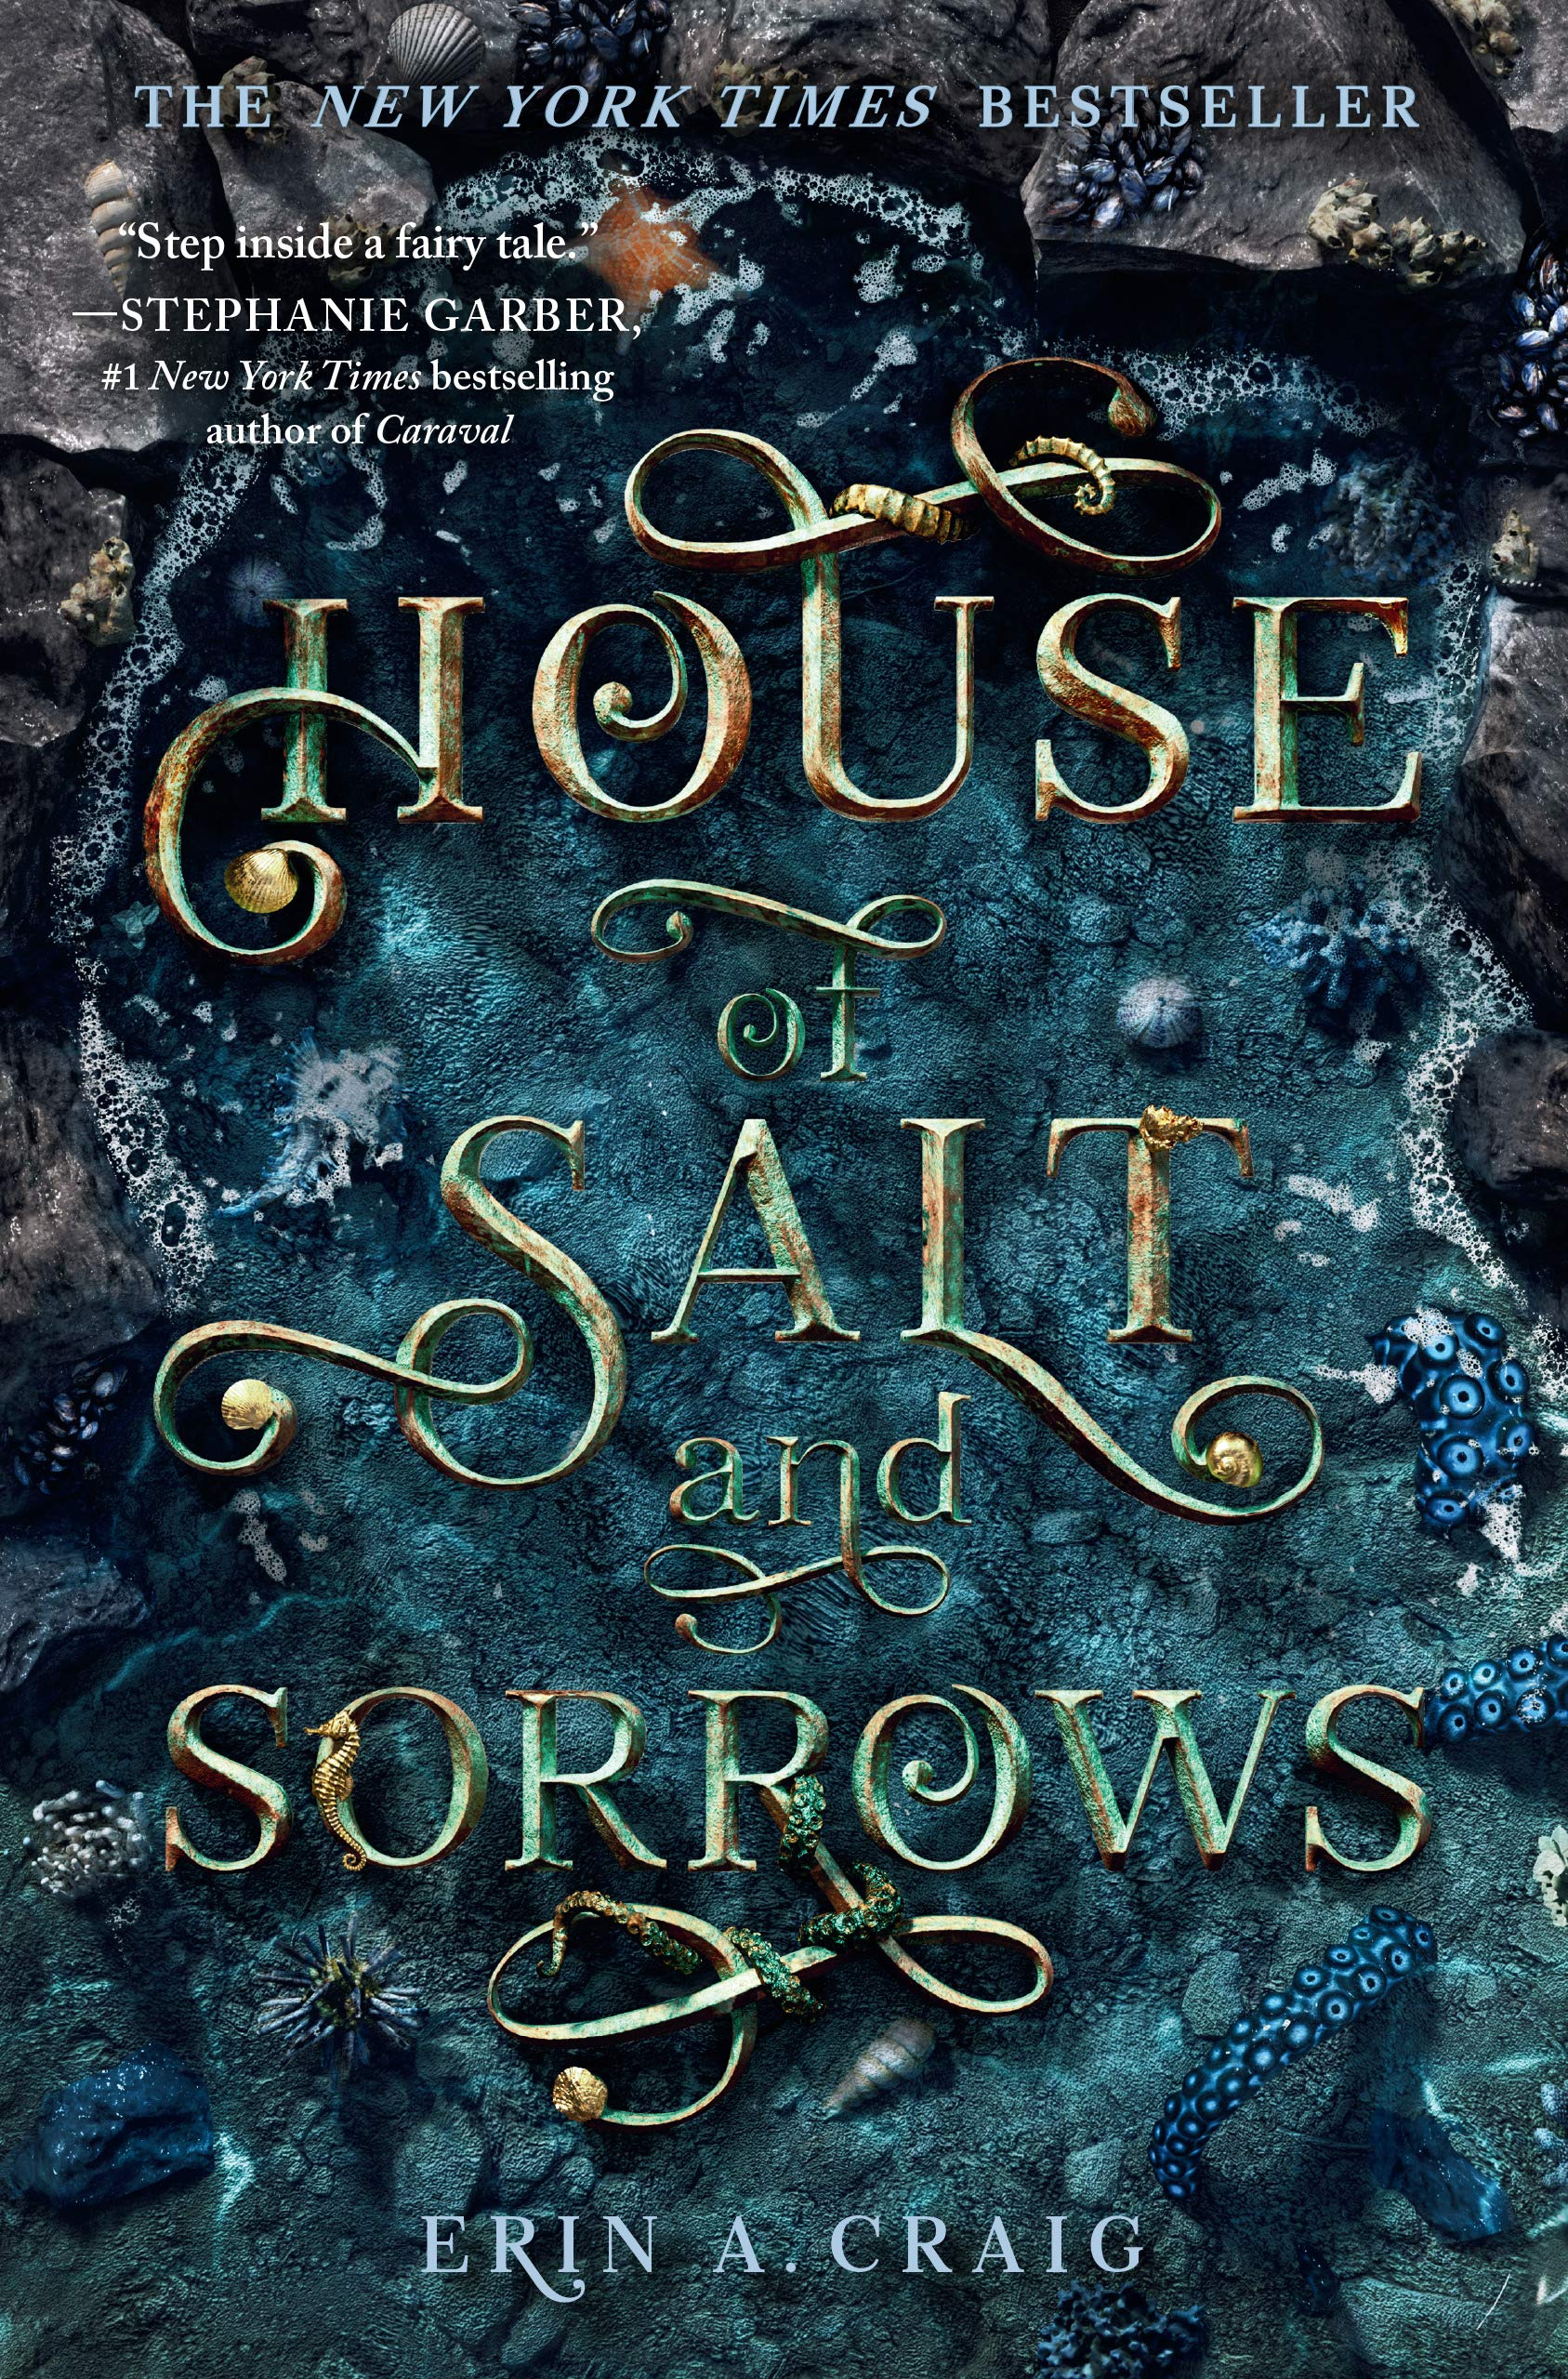 Amazon.com: House of Salt and Sorrows (9781984831927): Craig, Erin ...